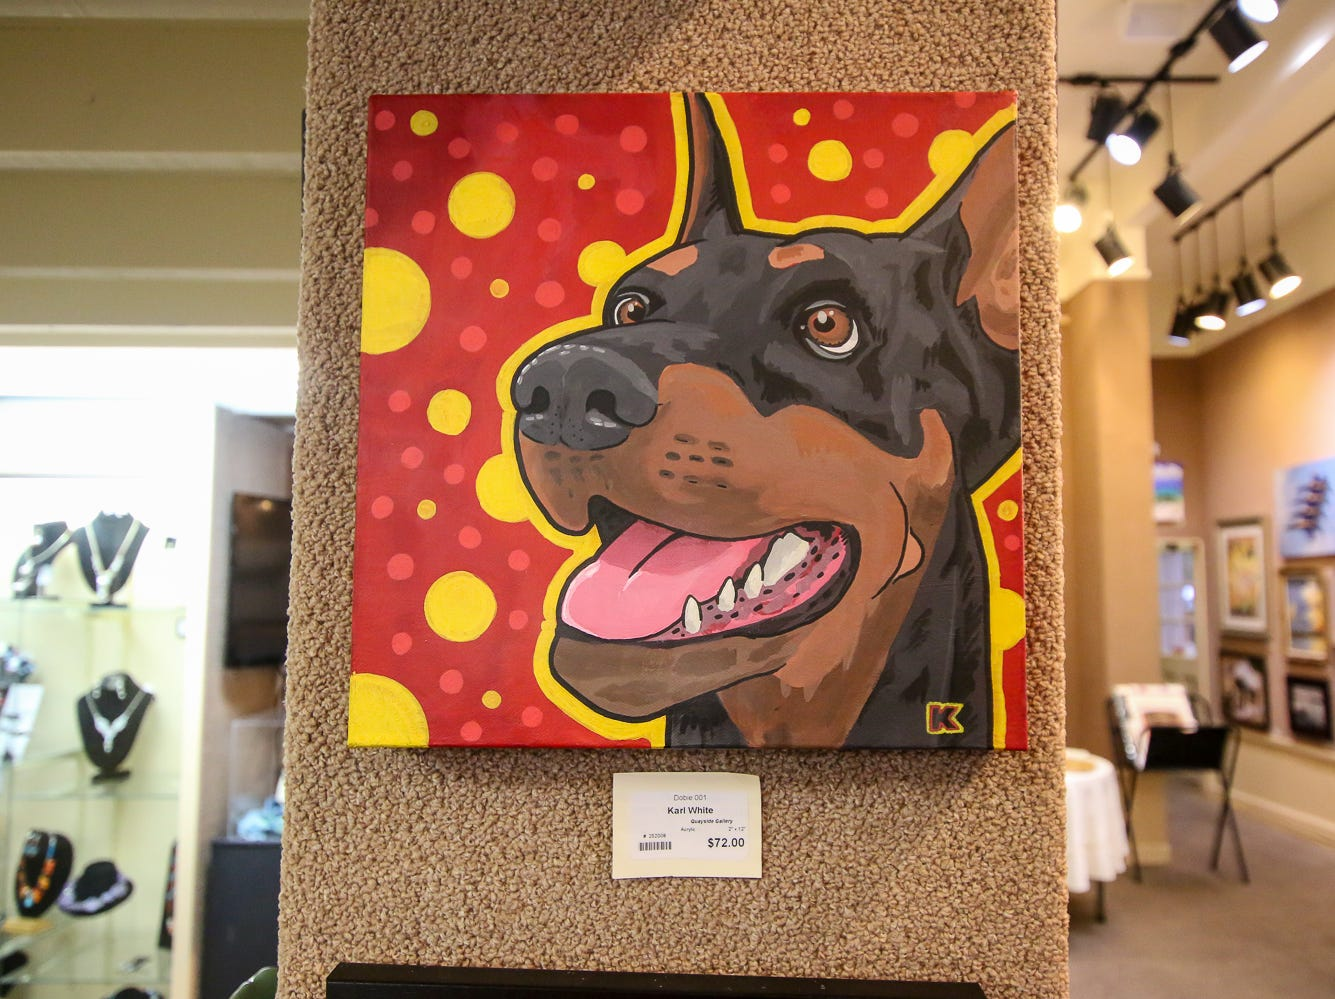 Some of the art on display at Quayside Art Gallery during Gallery Night on Friday, Sept. 21, 2018.